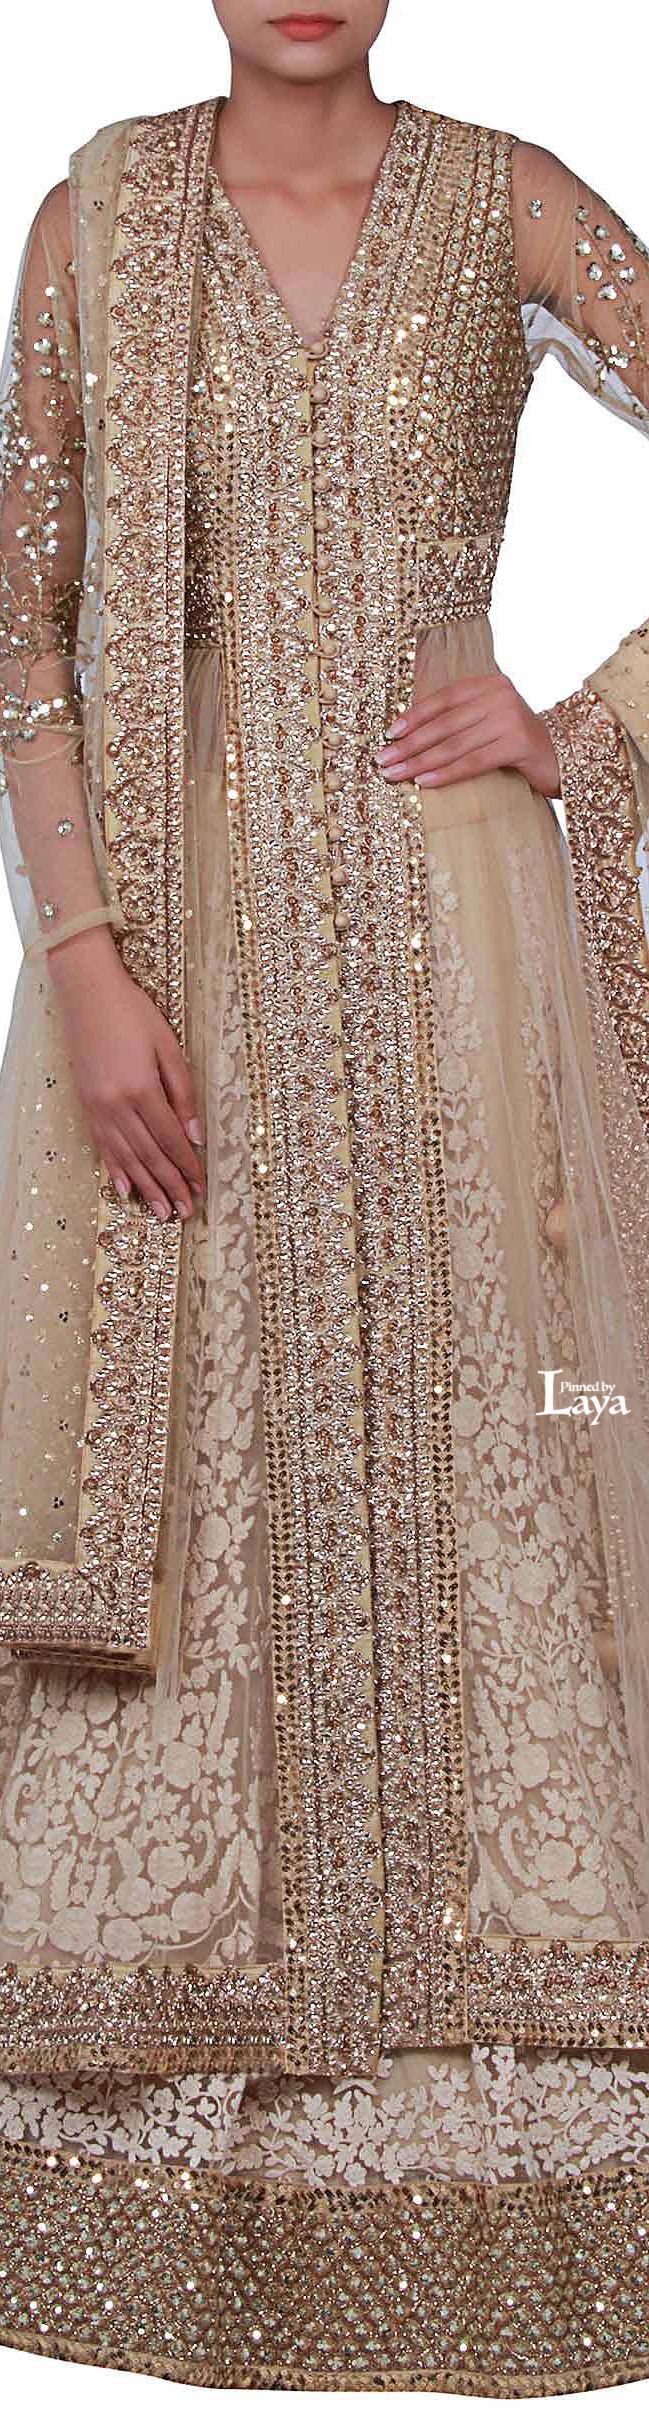 ♔BRIDAL LEHENGA♔ most likely end up wearing this color only lol